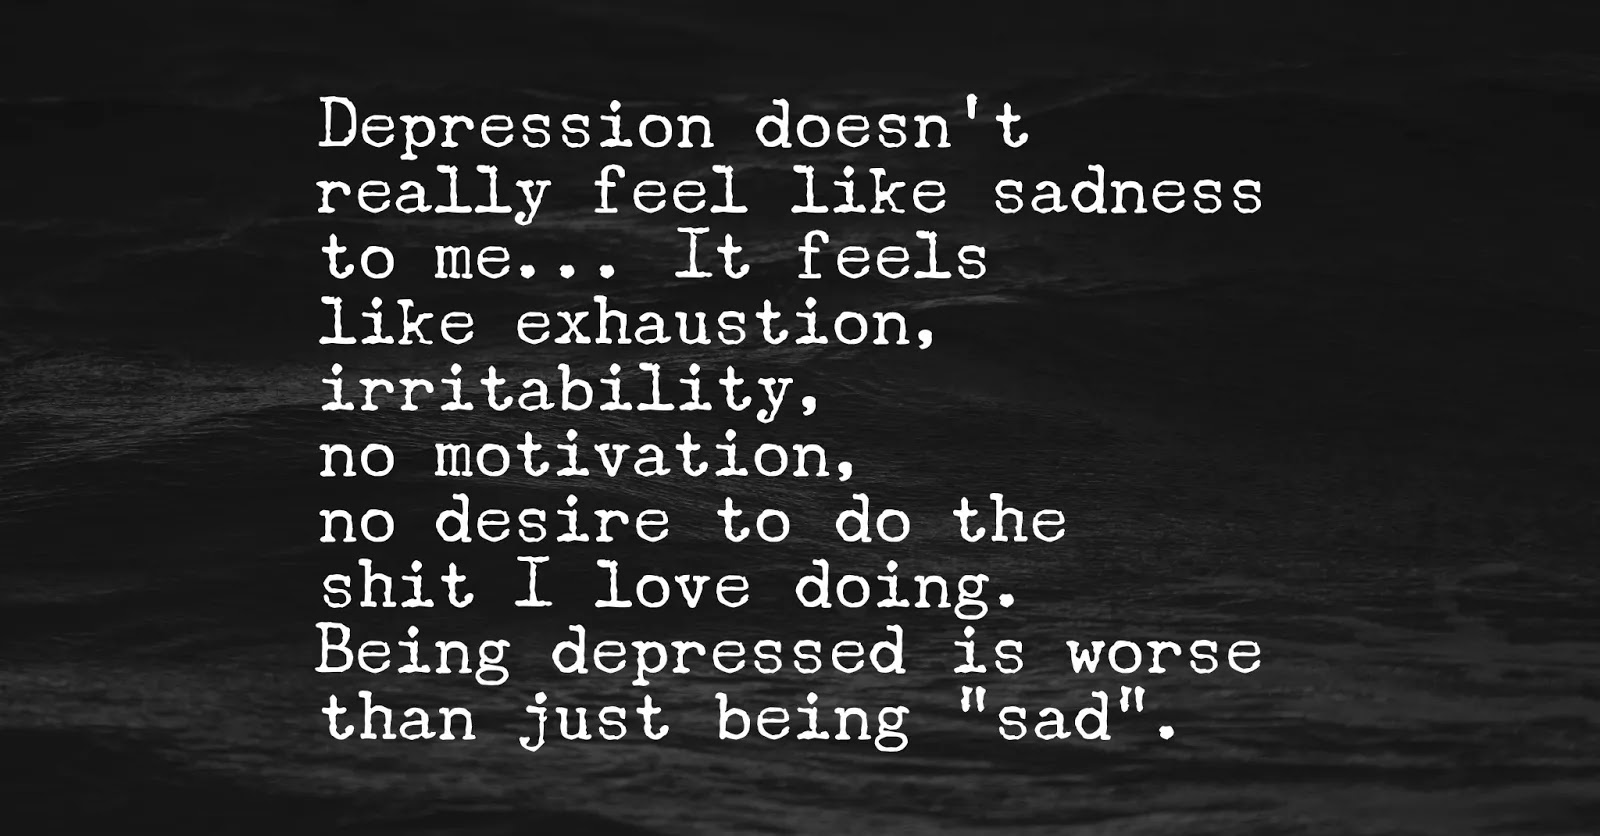 10 Depression Signs You Need To Be Aware Of